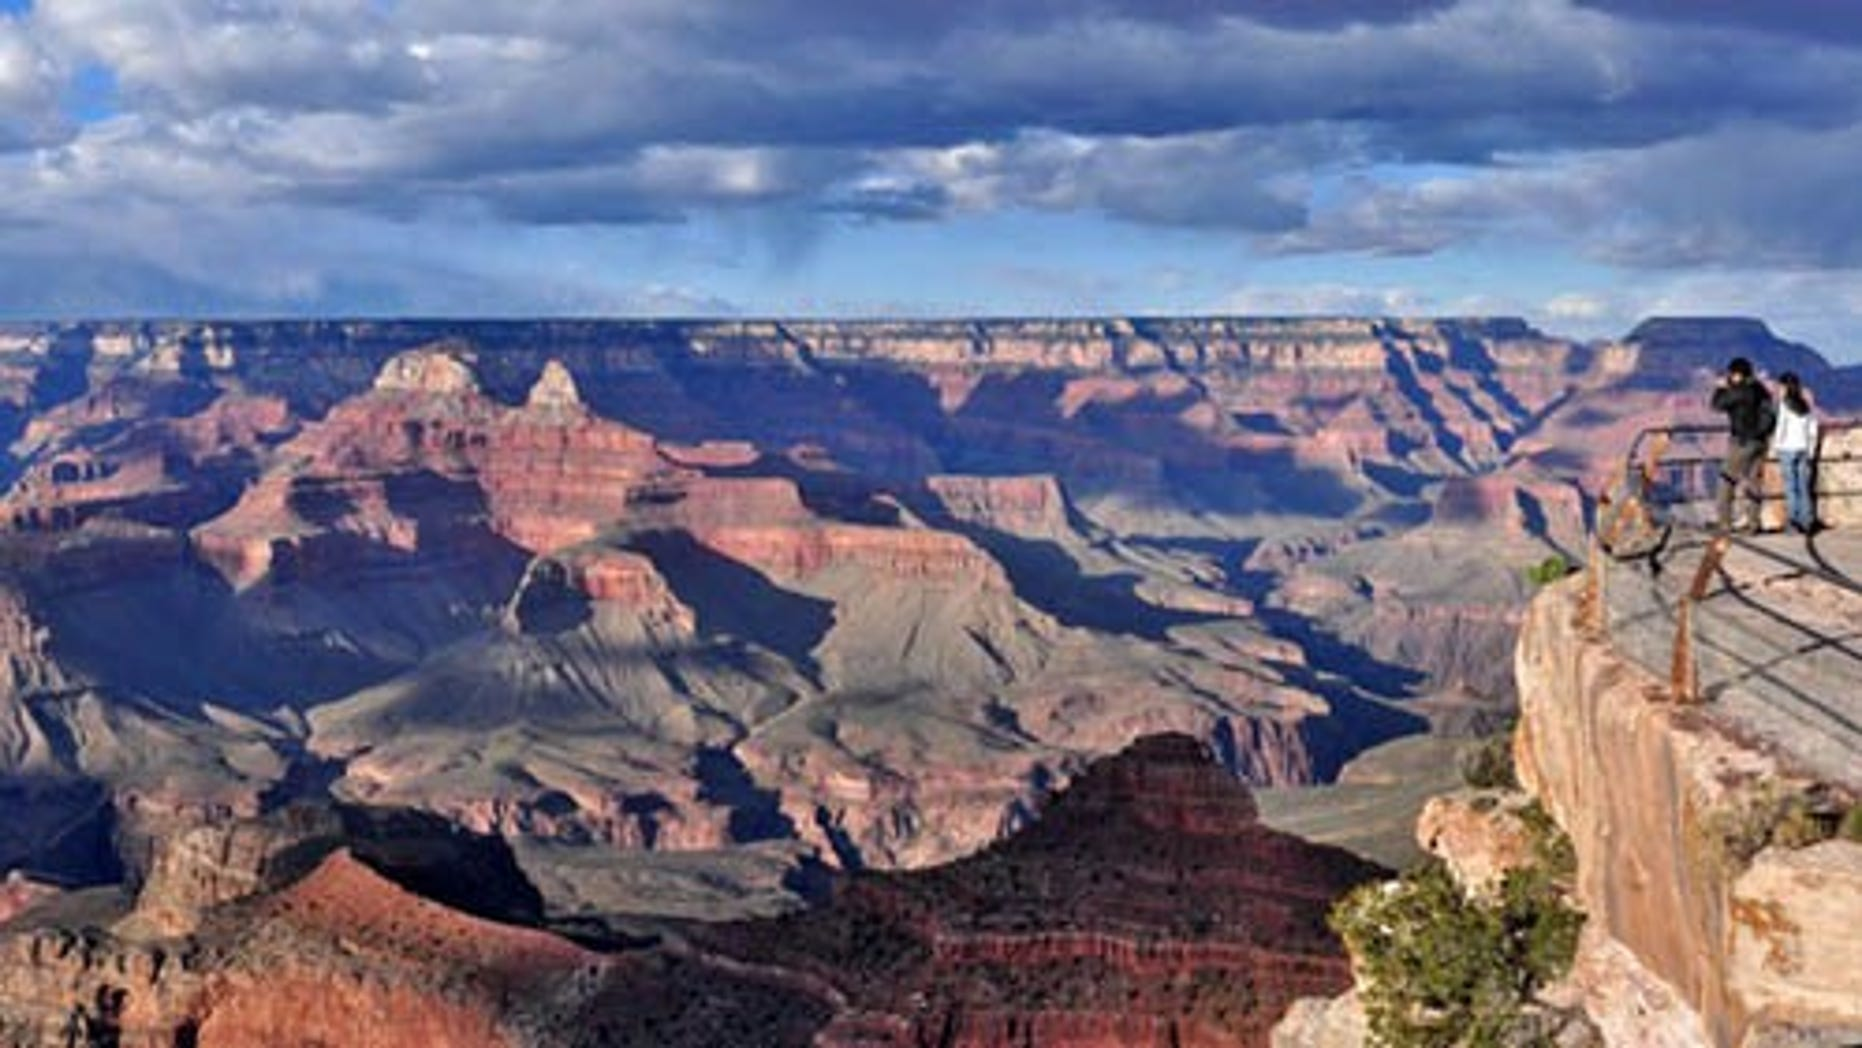 Grand Canyon officials launch probe into possible radiation exposure